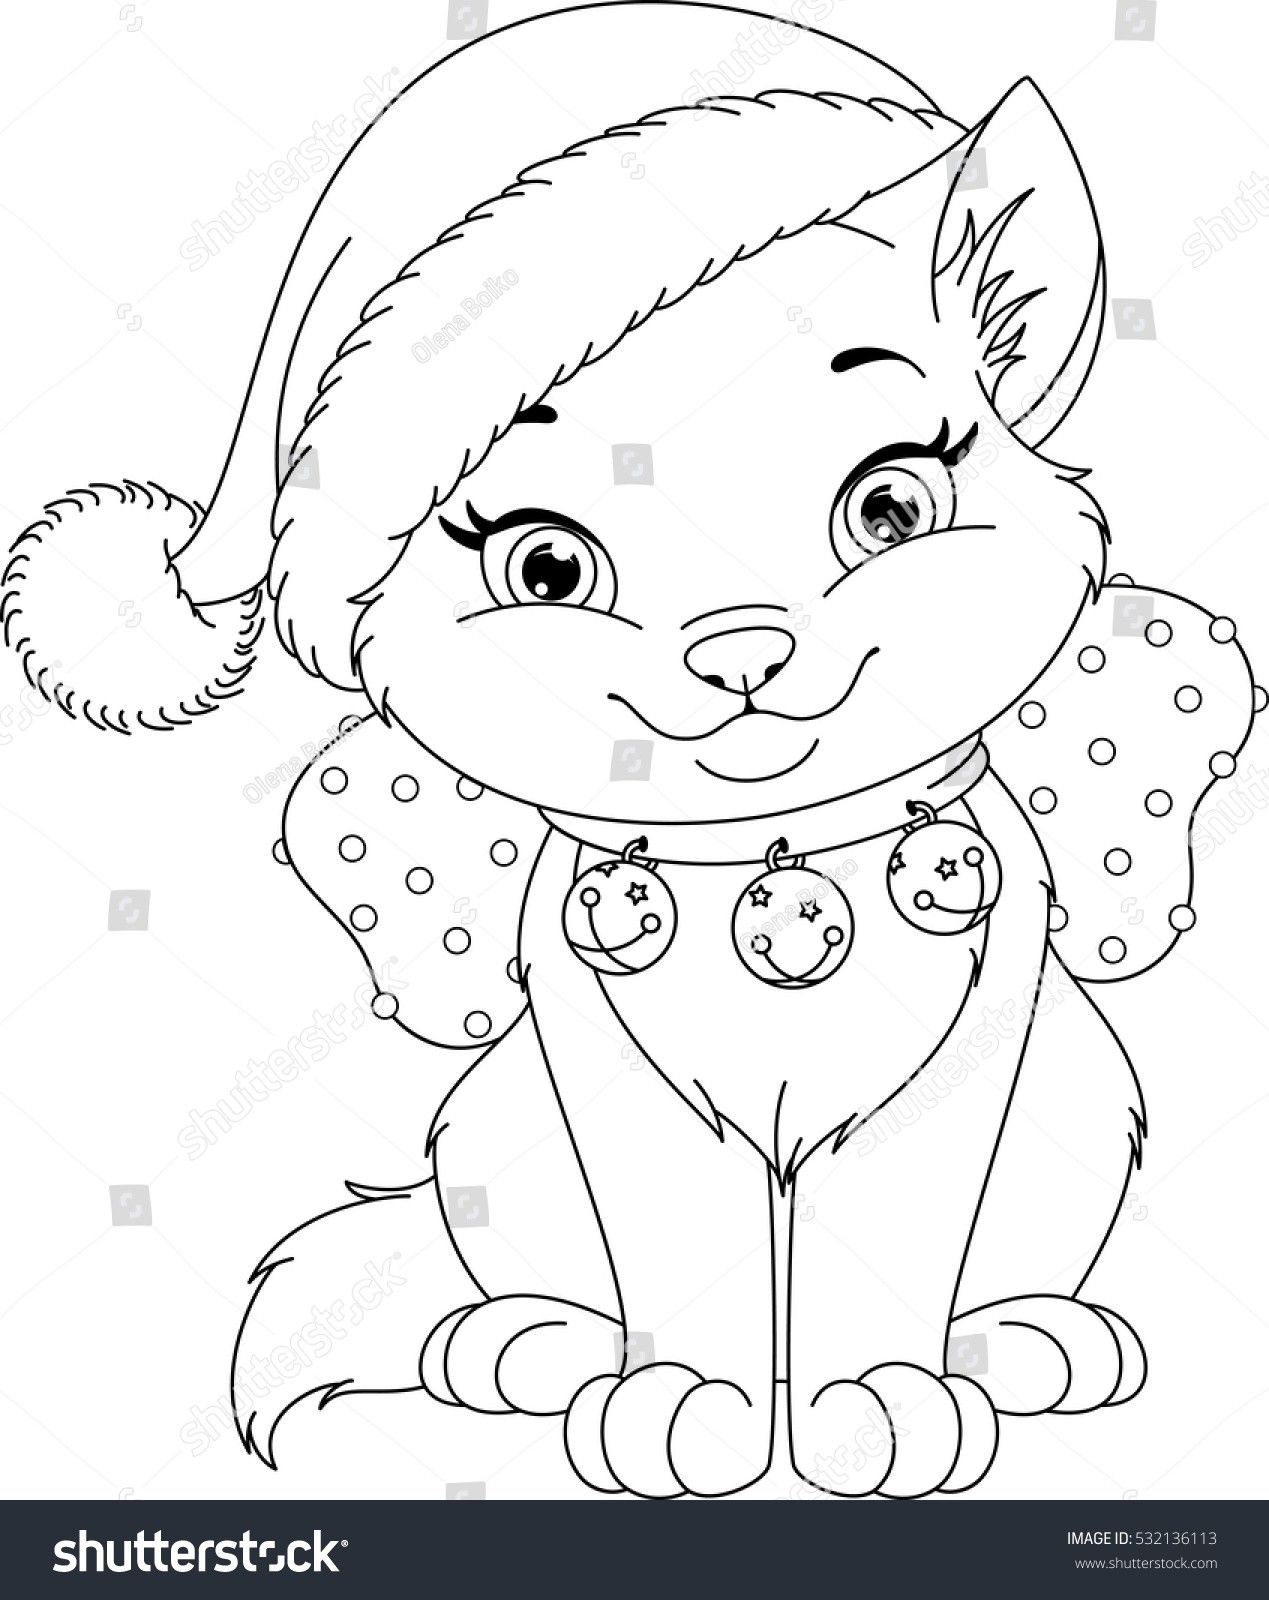 Christmas Cat Coloring Page Through The Thousand Pictures Online Regard Printable Christmas Coloring Pages Christmas Present Coloring Pages Cat Coloring Book